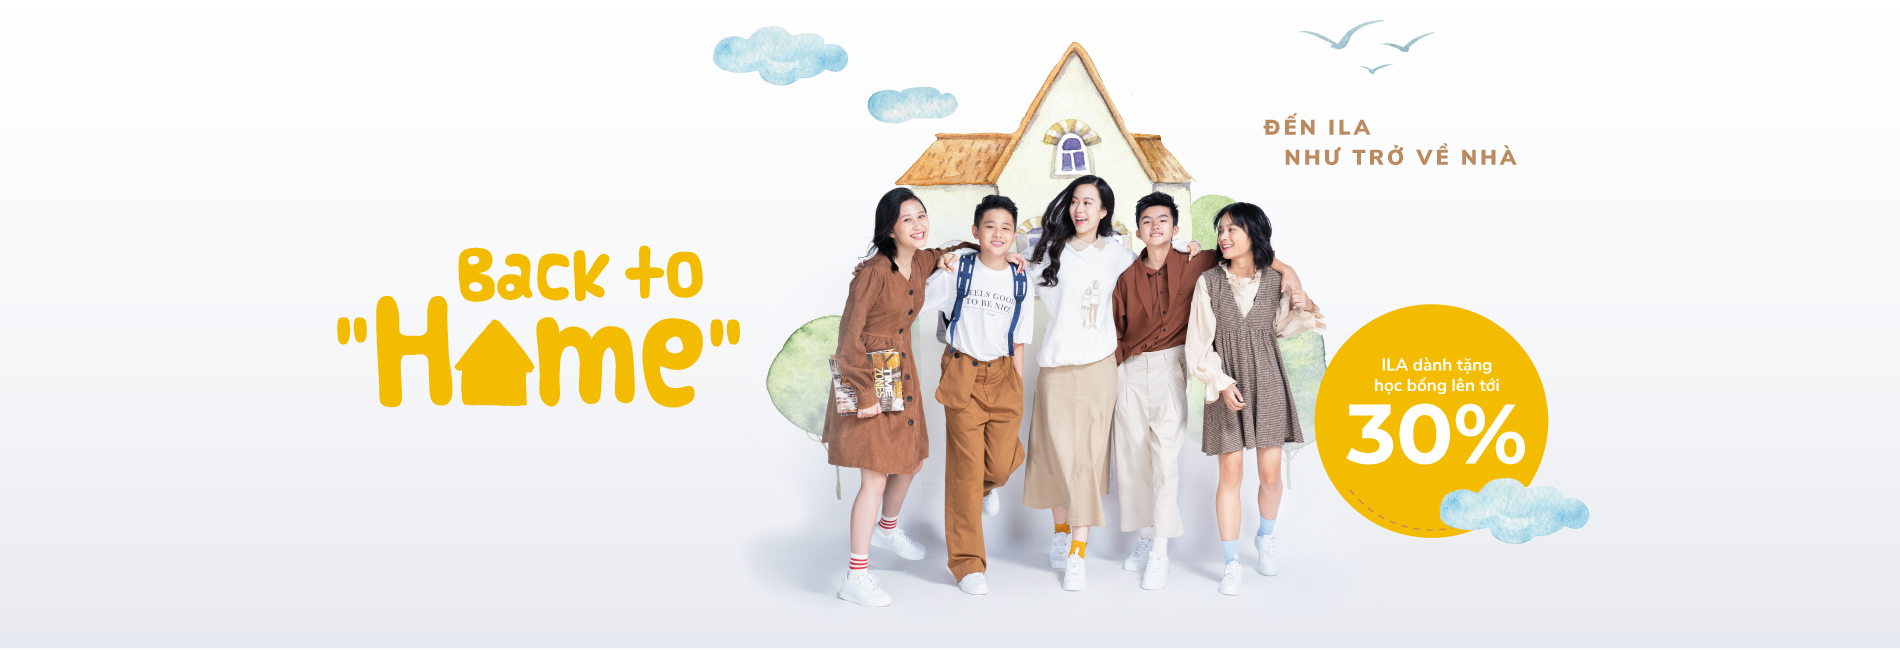 <a href='http://ila.edu.vn/campaigns/back-to-home' target='_blank' id='link-banner-b2h2019'>ILA - Back To Home</a>